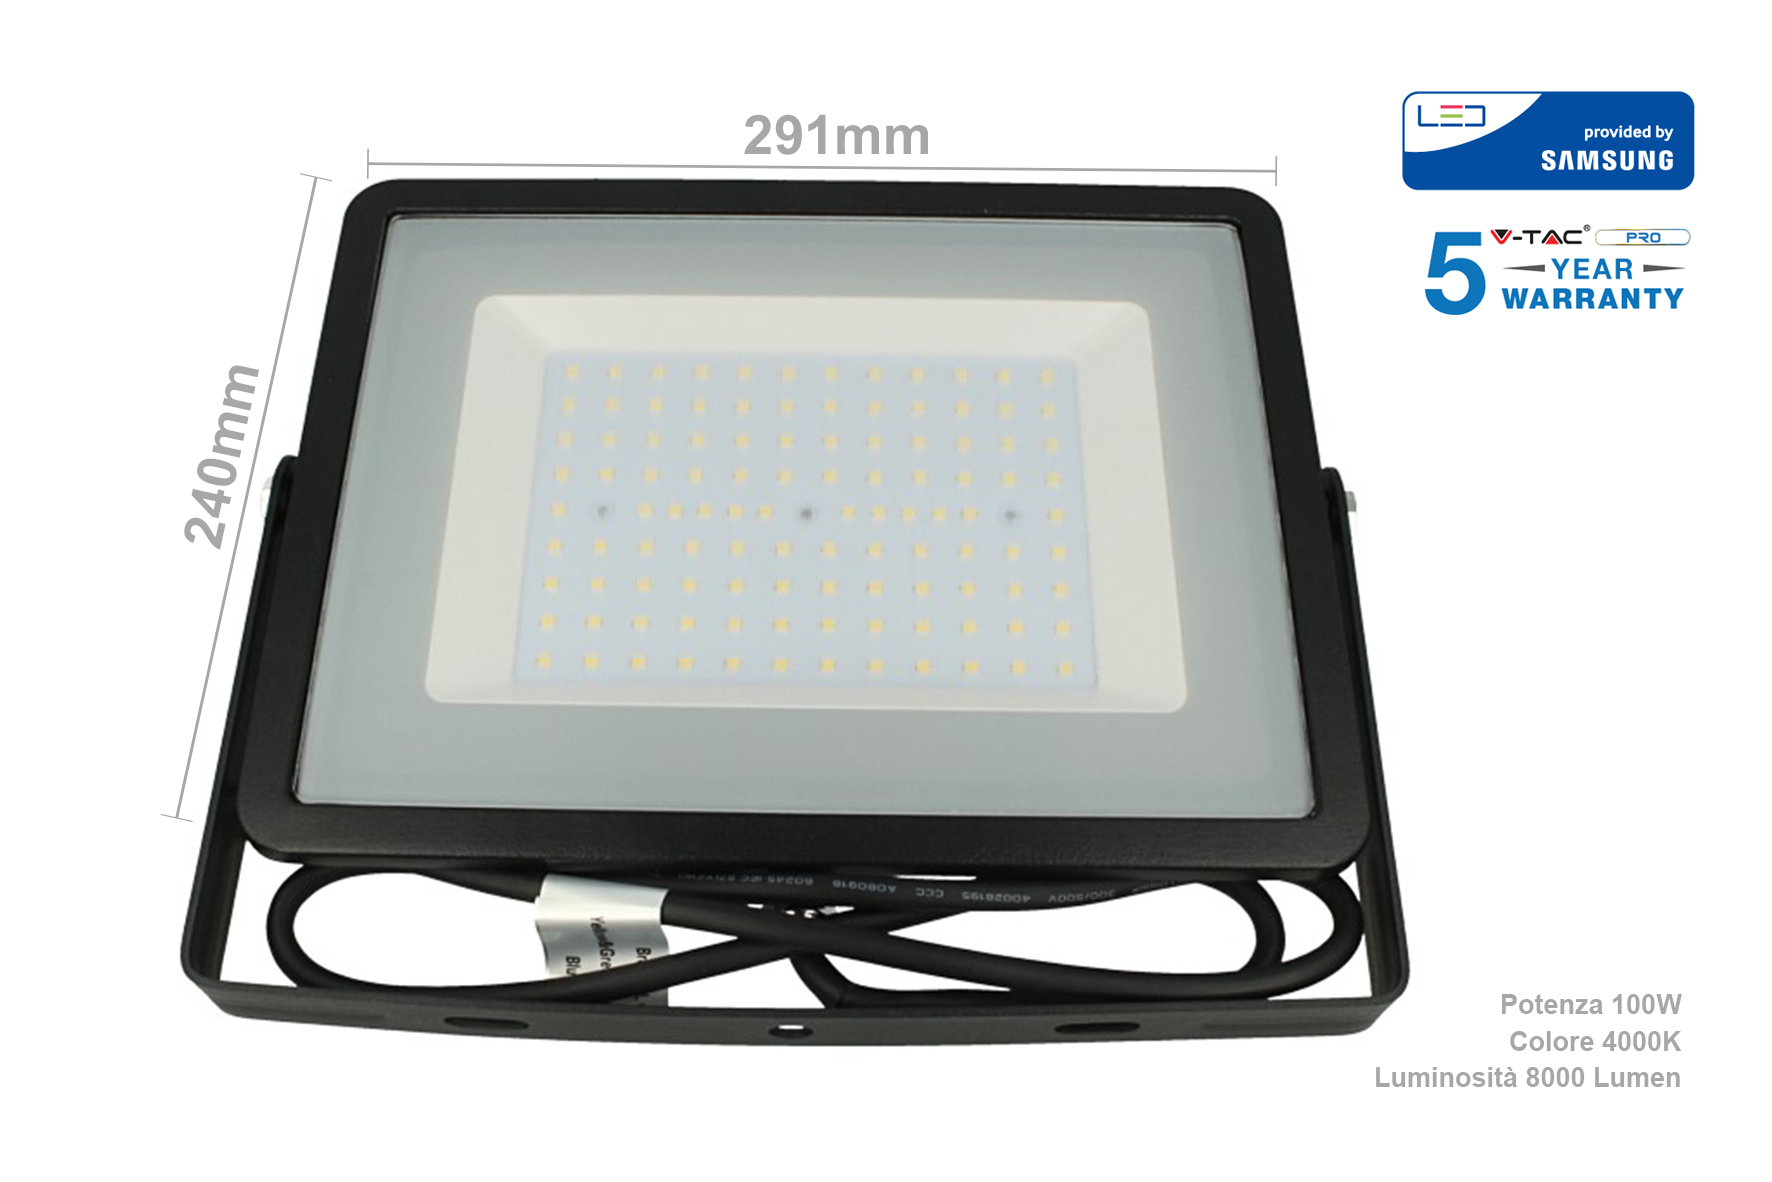 Faro Led Flood Light 100W IP65 Bianco Neutro Super Slim 30mm Carcassa Nera Samsung Garanzia 5 Anni SKU-413 - KIT